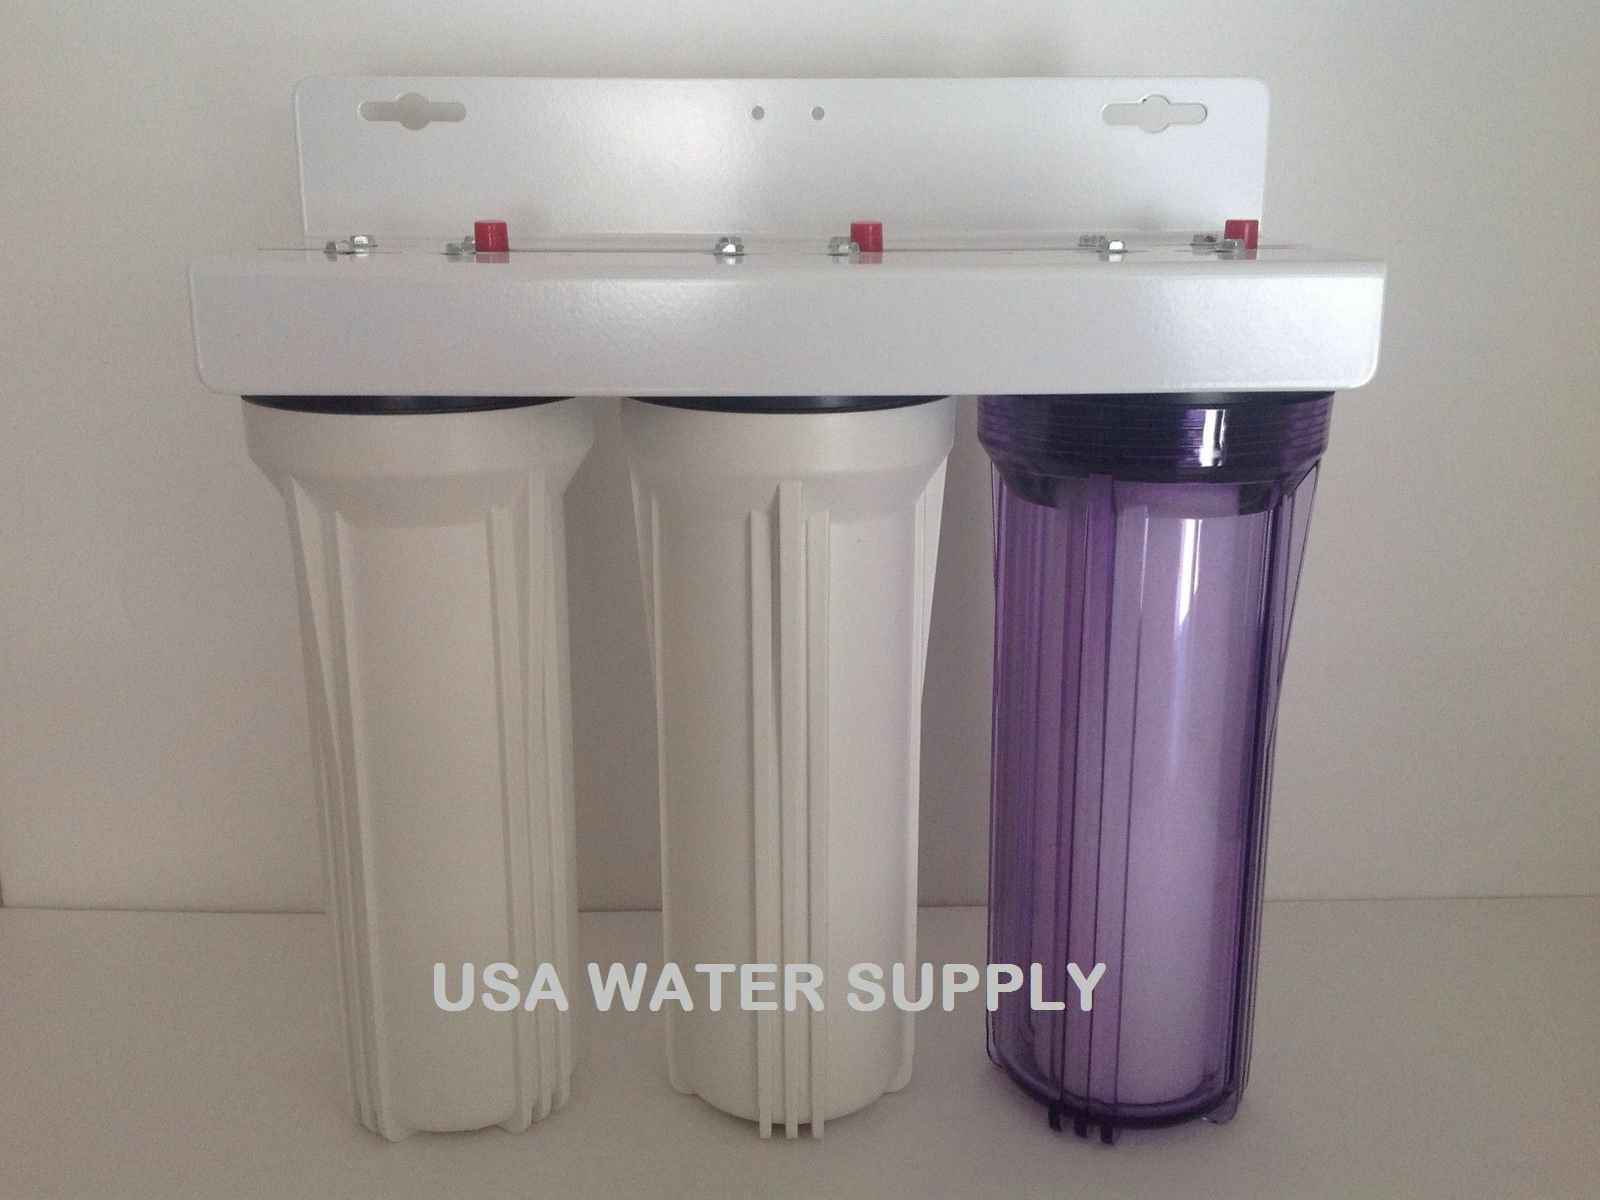 USA WATER 3 STAGE 10 10 10  X 2.5  3 4  PORT WHOLE HOUSE IRON MANGANESE WATER FILTER 13b350